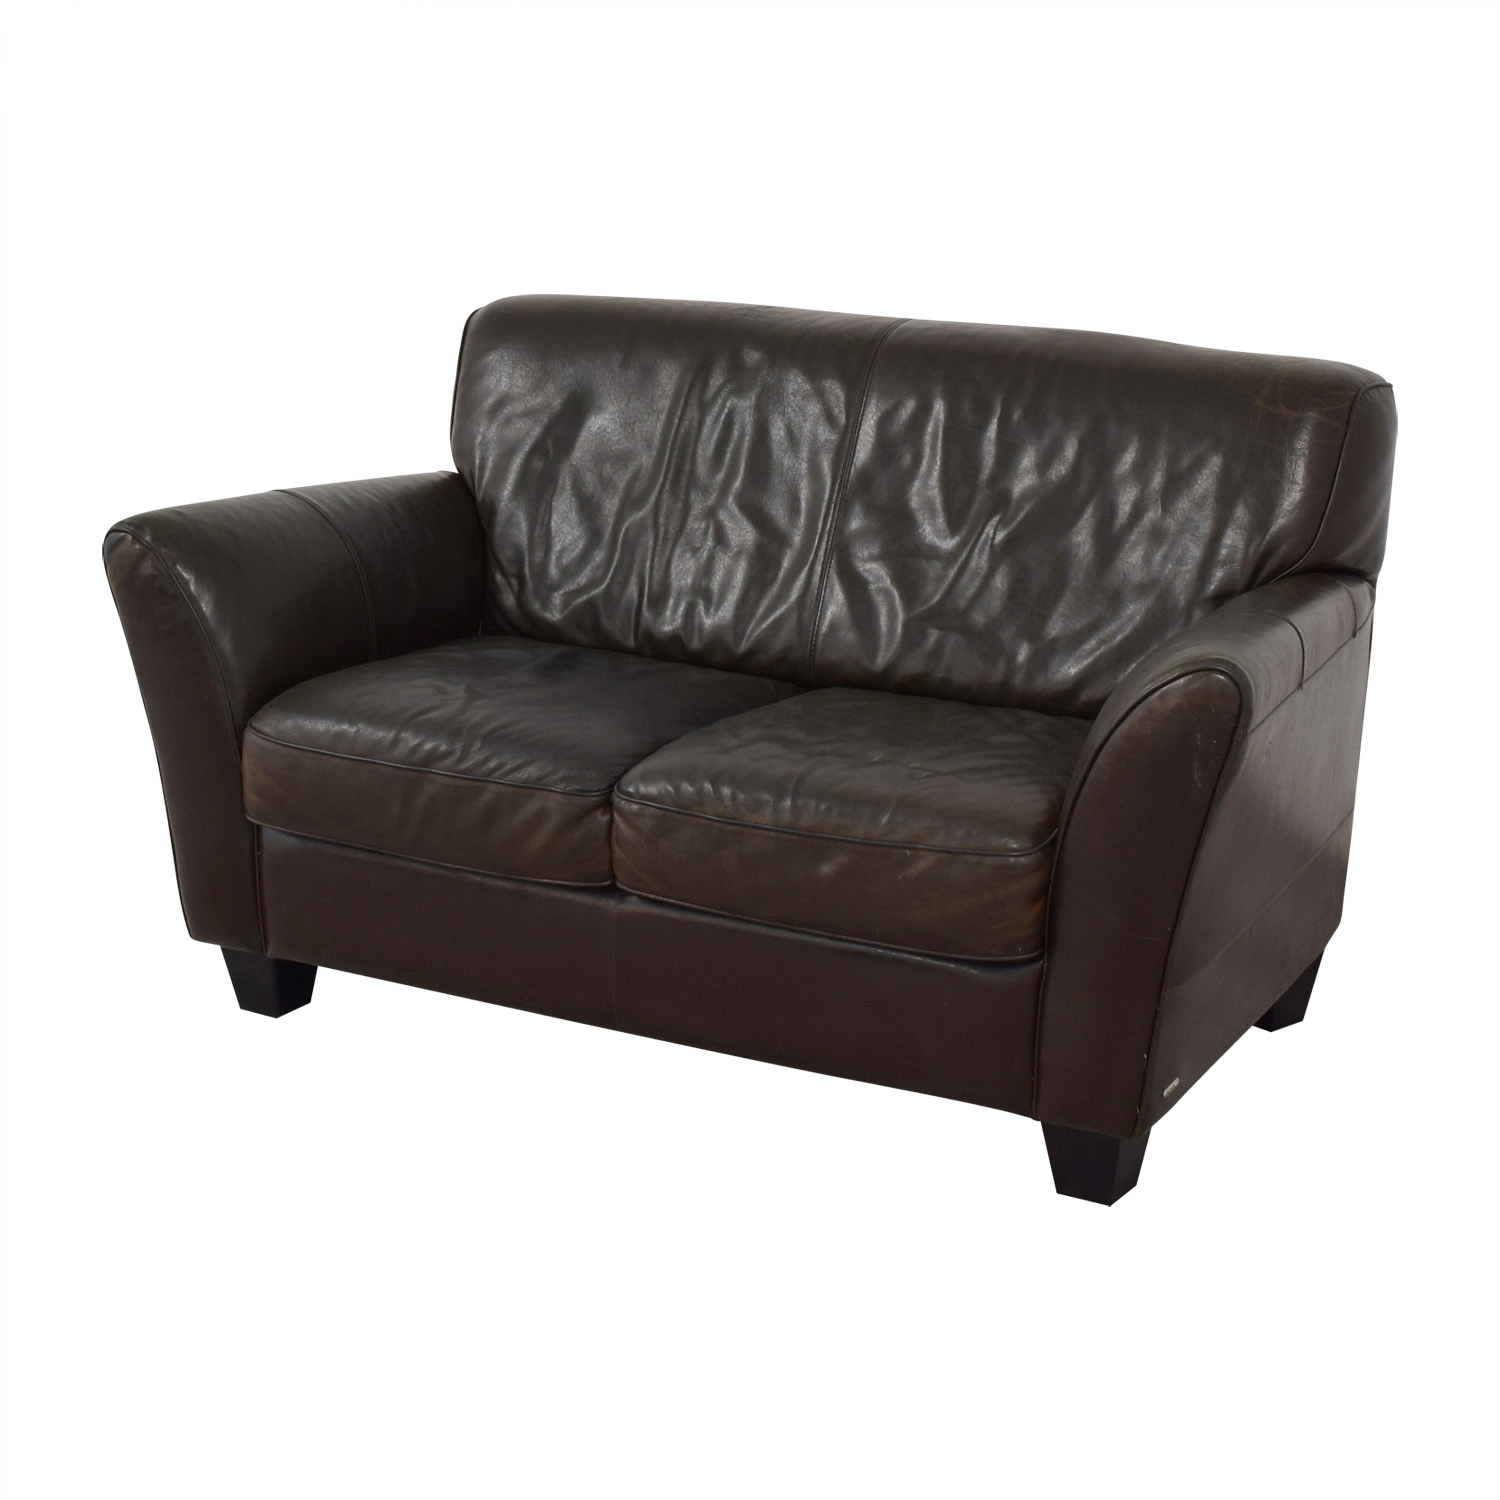 Natuzzi Natuzzi Brown Two-Cushion Couch price